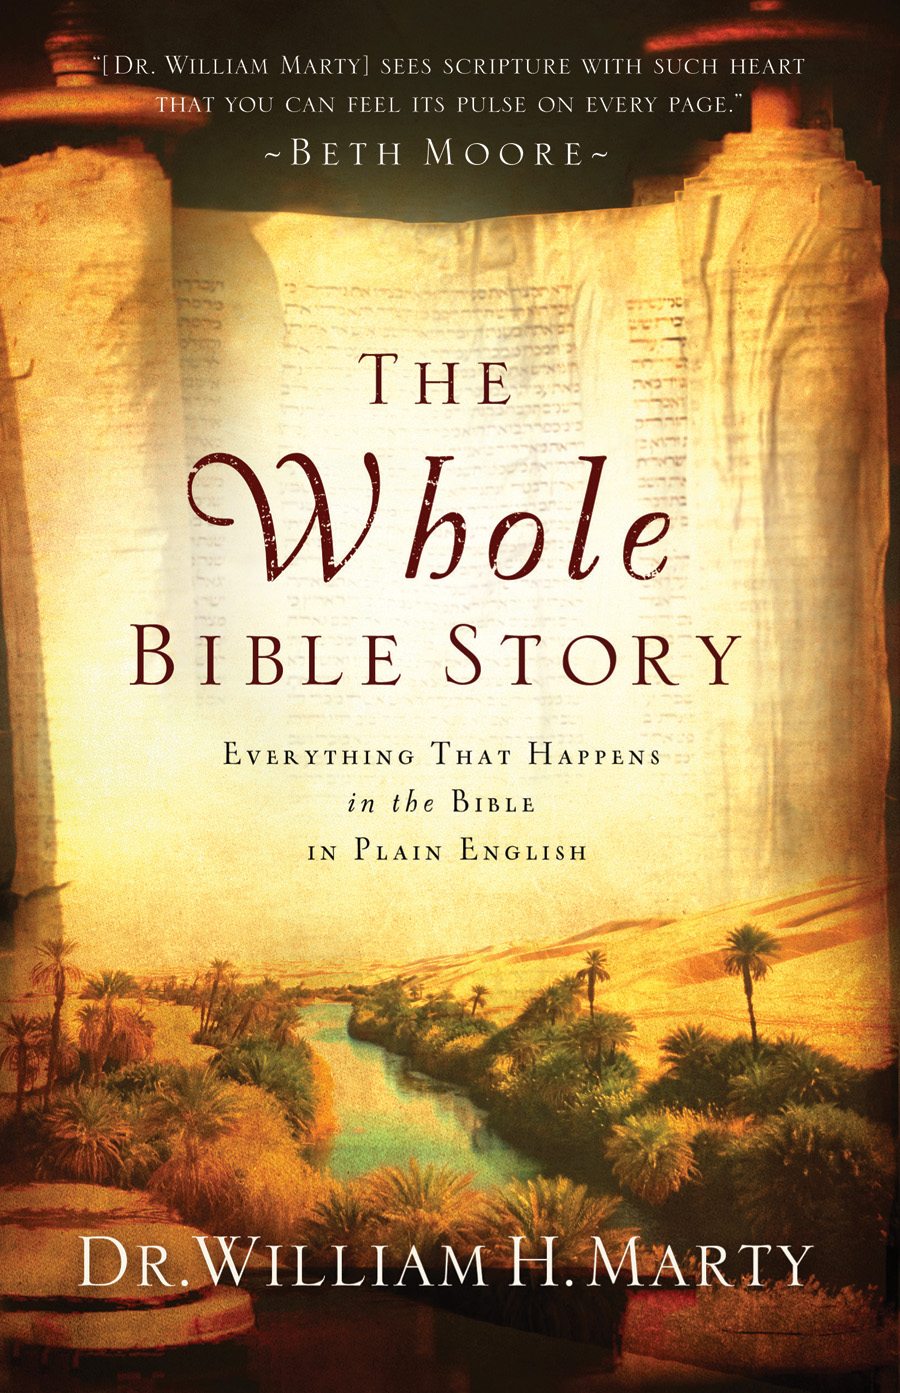 the view of zerubabbel as a messianic figure in the bible It is our purpose to view the messiah in the minor prophets and to zerubbabel is to be the messianic figure and into a messianic figure only.